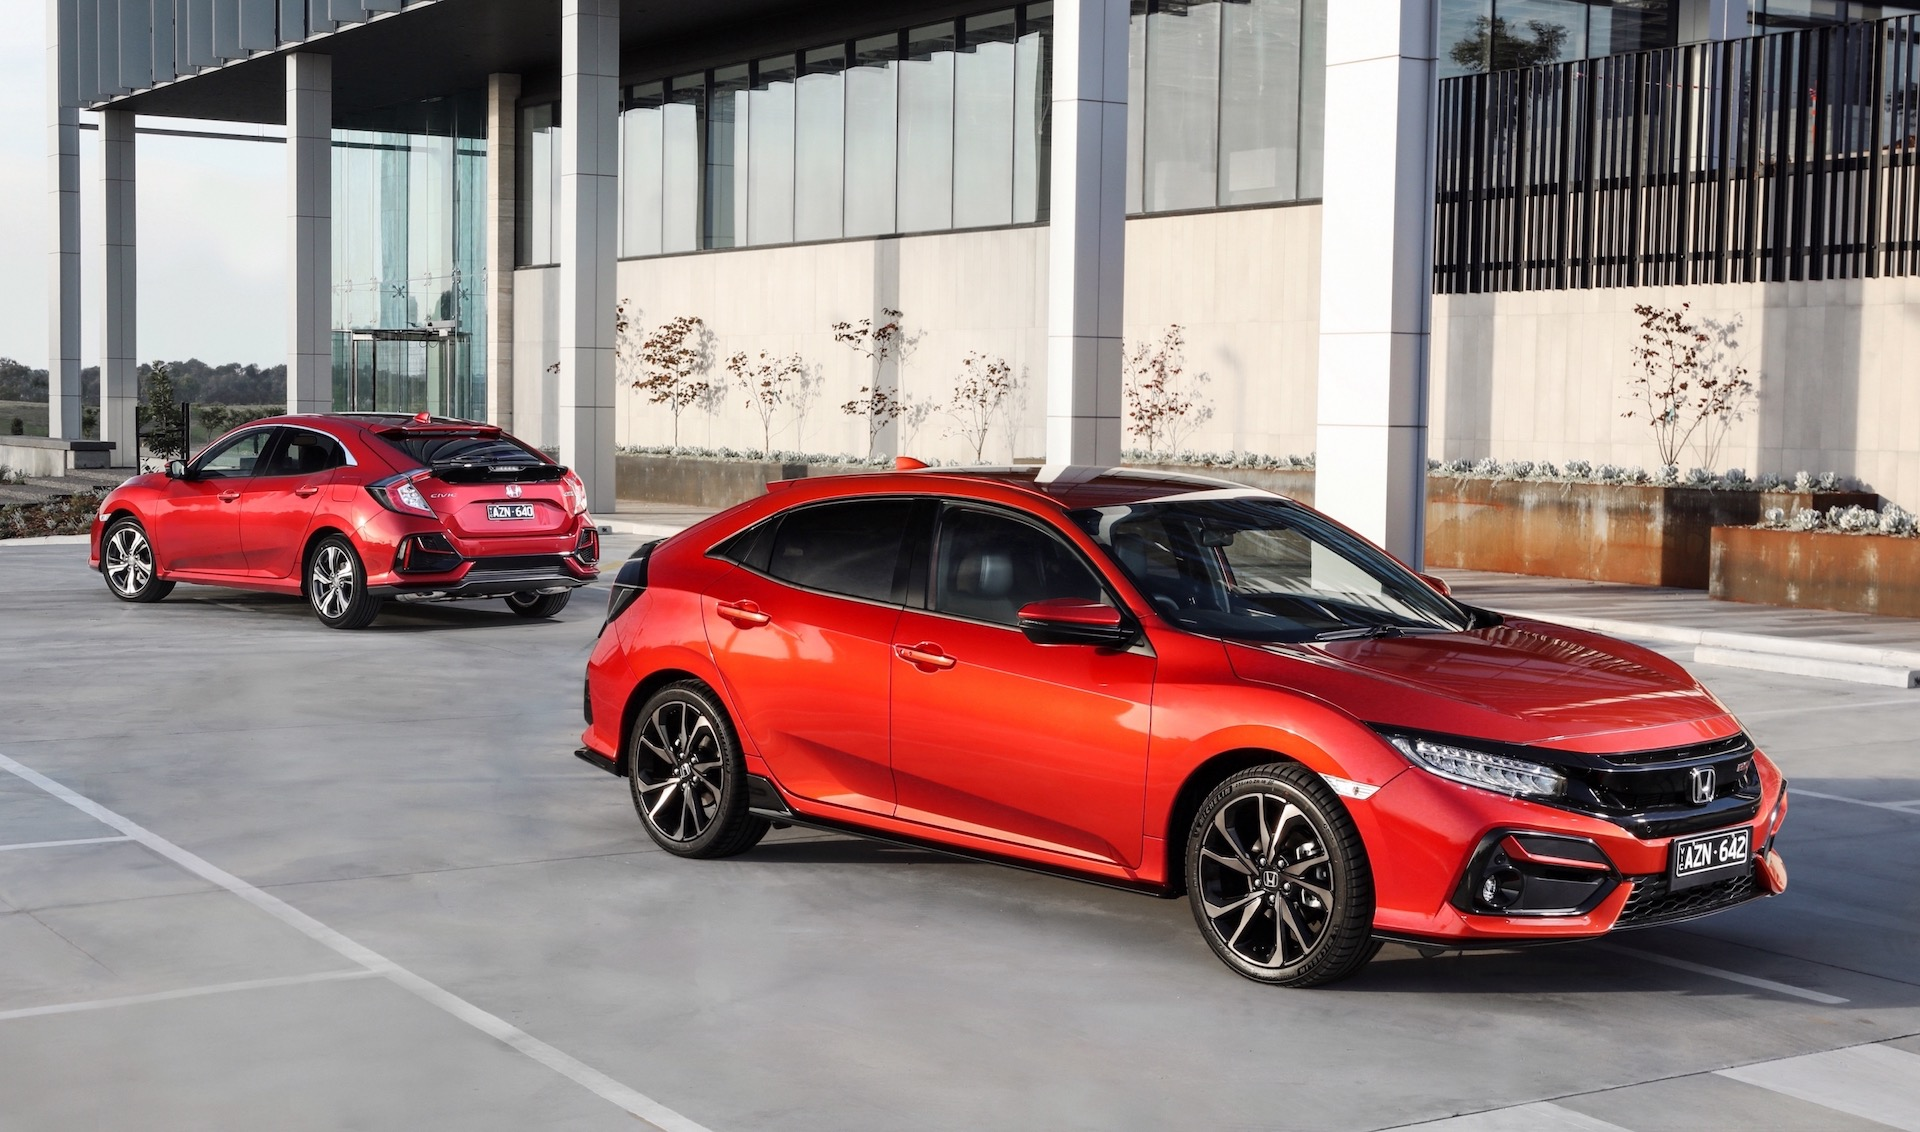 Honda's five-door Civic Hatch gets minor styling changes and new active safety elements